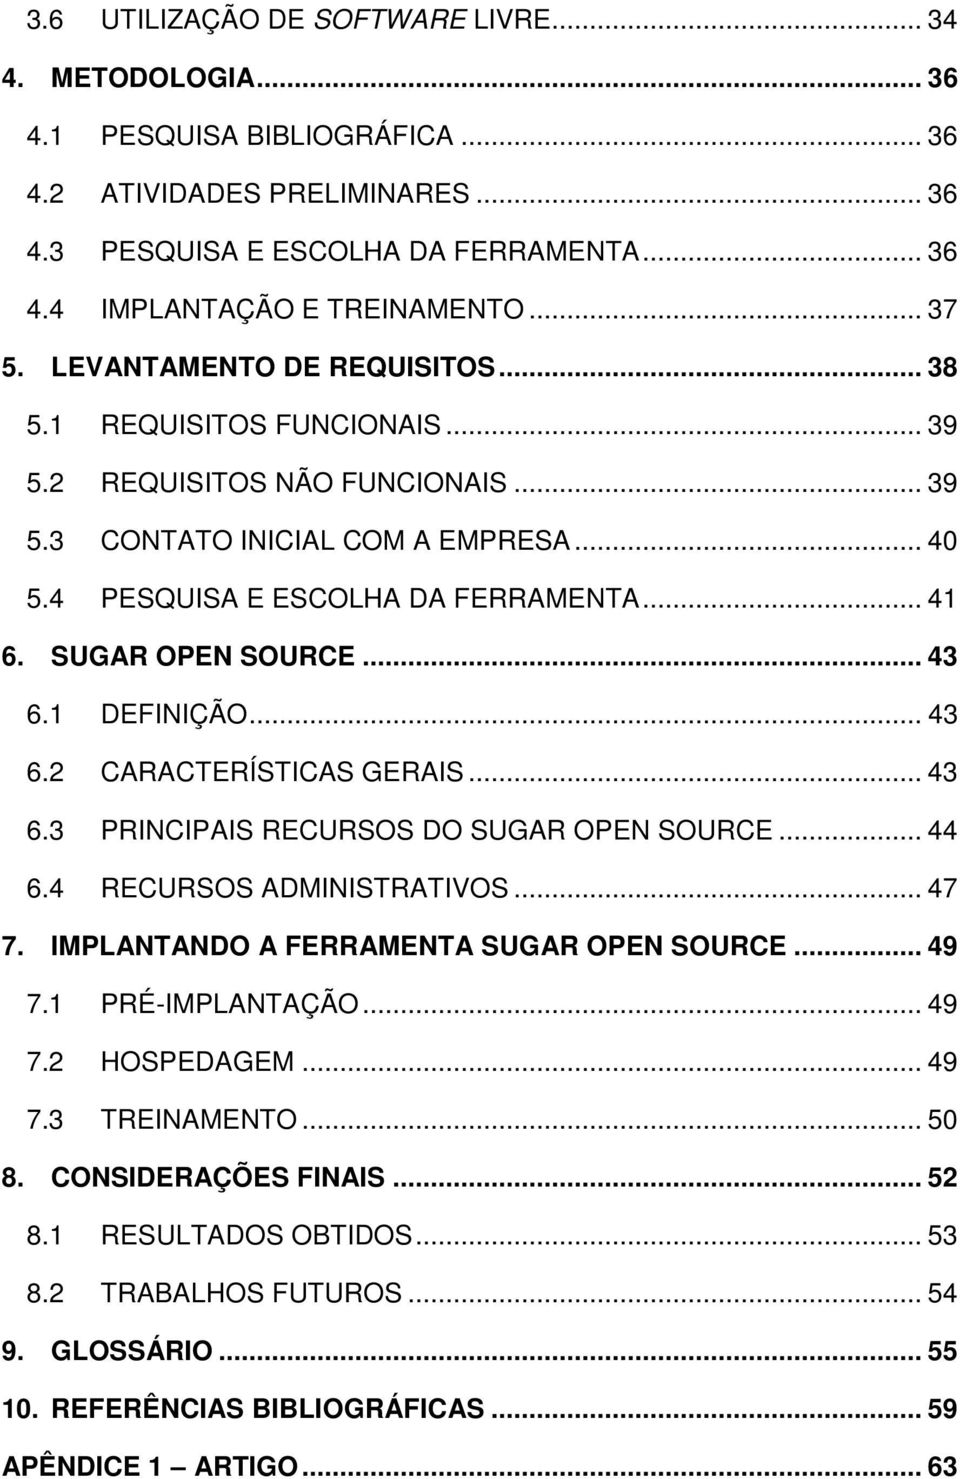 SUGAR OPEN SOURCE... 43 6.1 DEFINIÇÃO... 43 6.2 CARACTERÍSTICAS GERAIS... 43 6.3 PRINCIPAIS RECURSOS DO SUGAR OPEN SOURCE... 44 6.4 RECURSOS ADMINISTRATIVOS... 47 7.